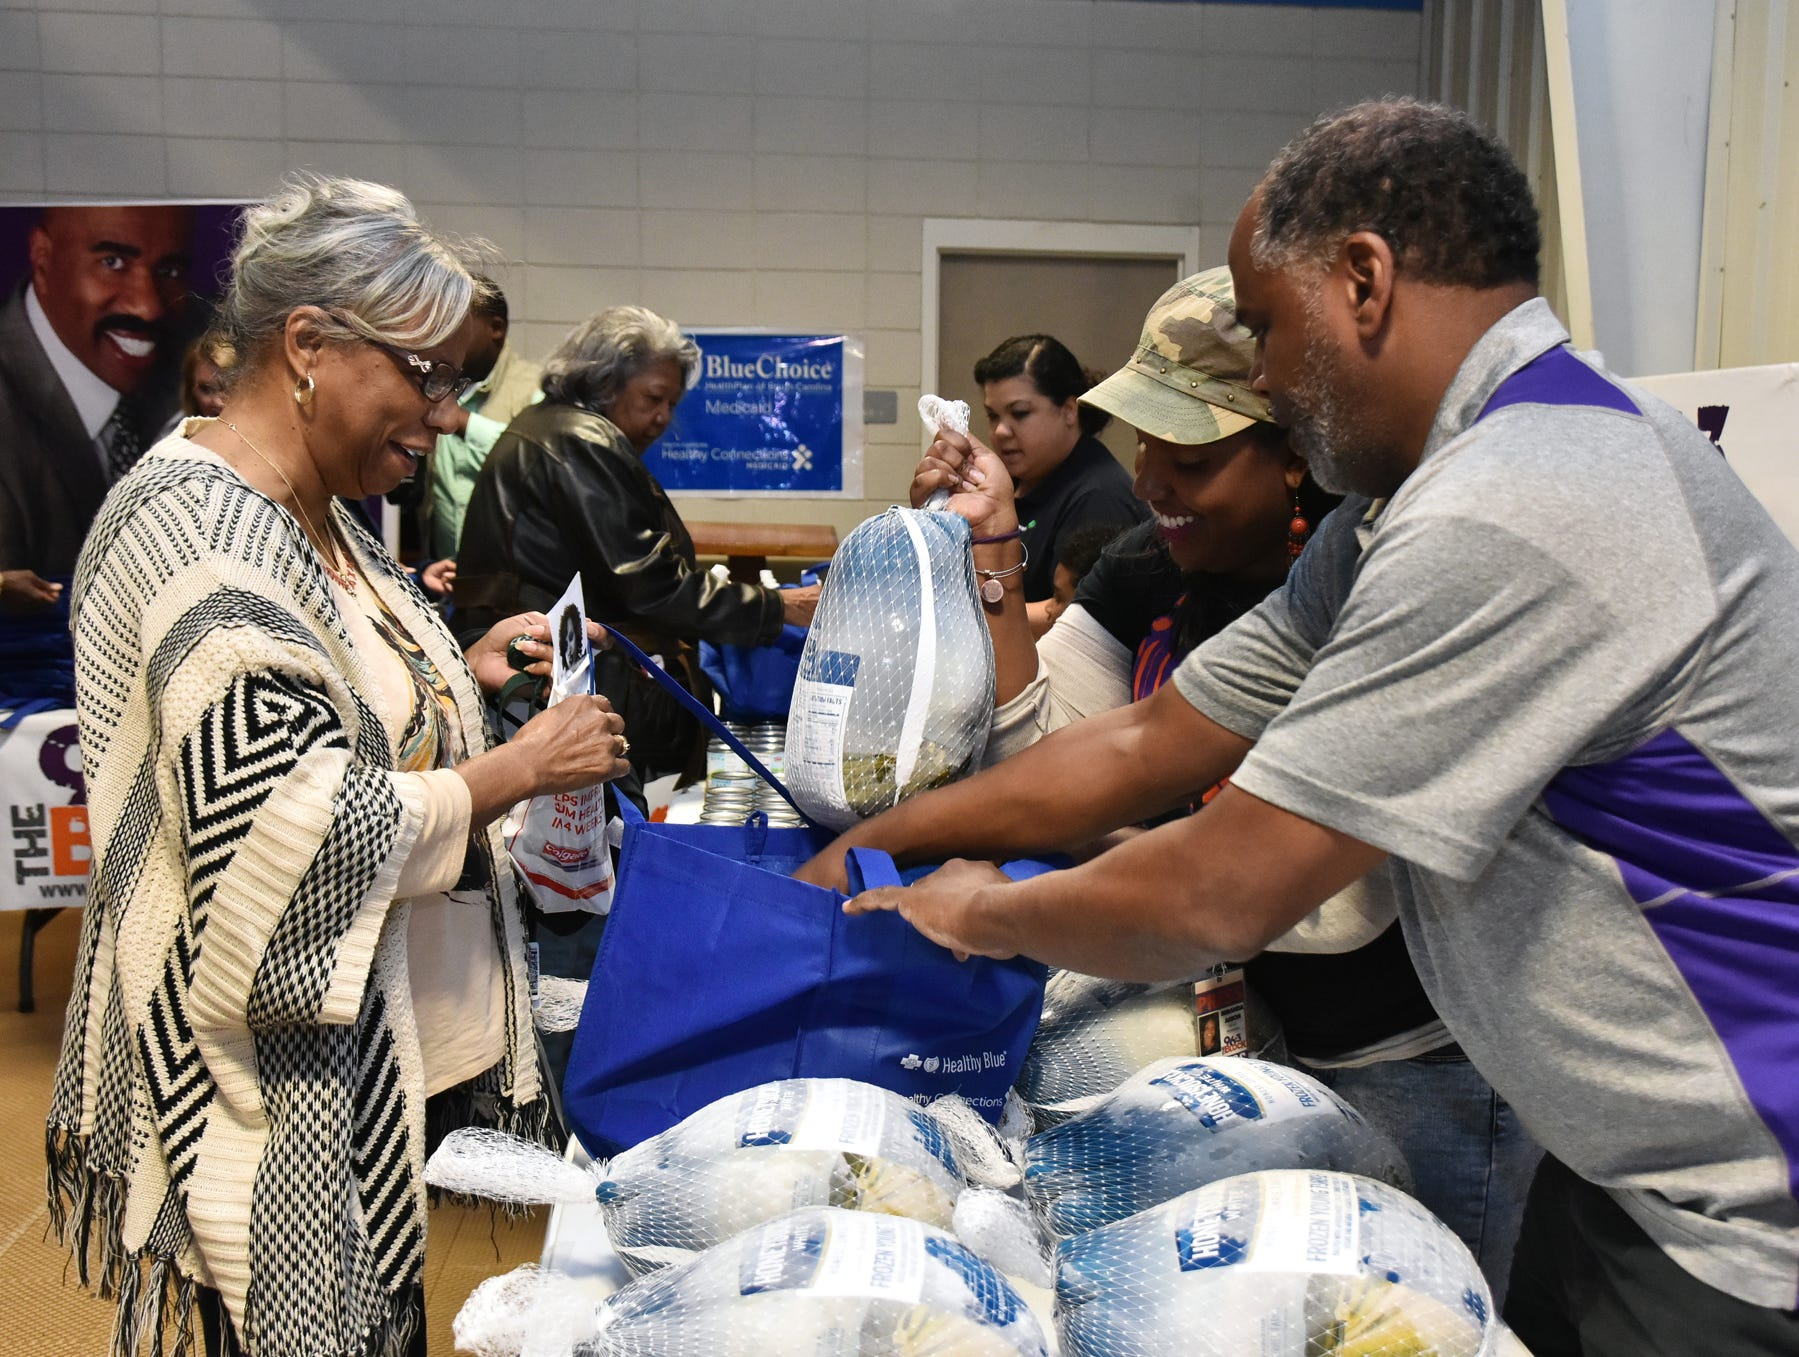 Duane Neal, an on-air personality at The Block, 96.3 in Greenville hands out turkeys during The Block presents The Steve Harvey Morning Show Turkey Give at the Freetown Community Center Tuesday evening, November 20, 2018.